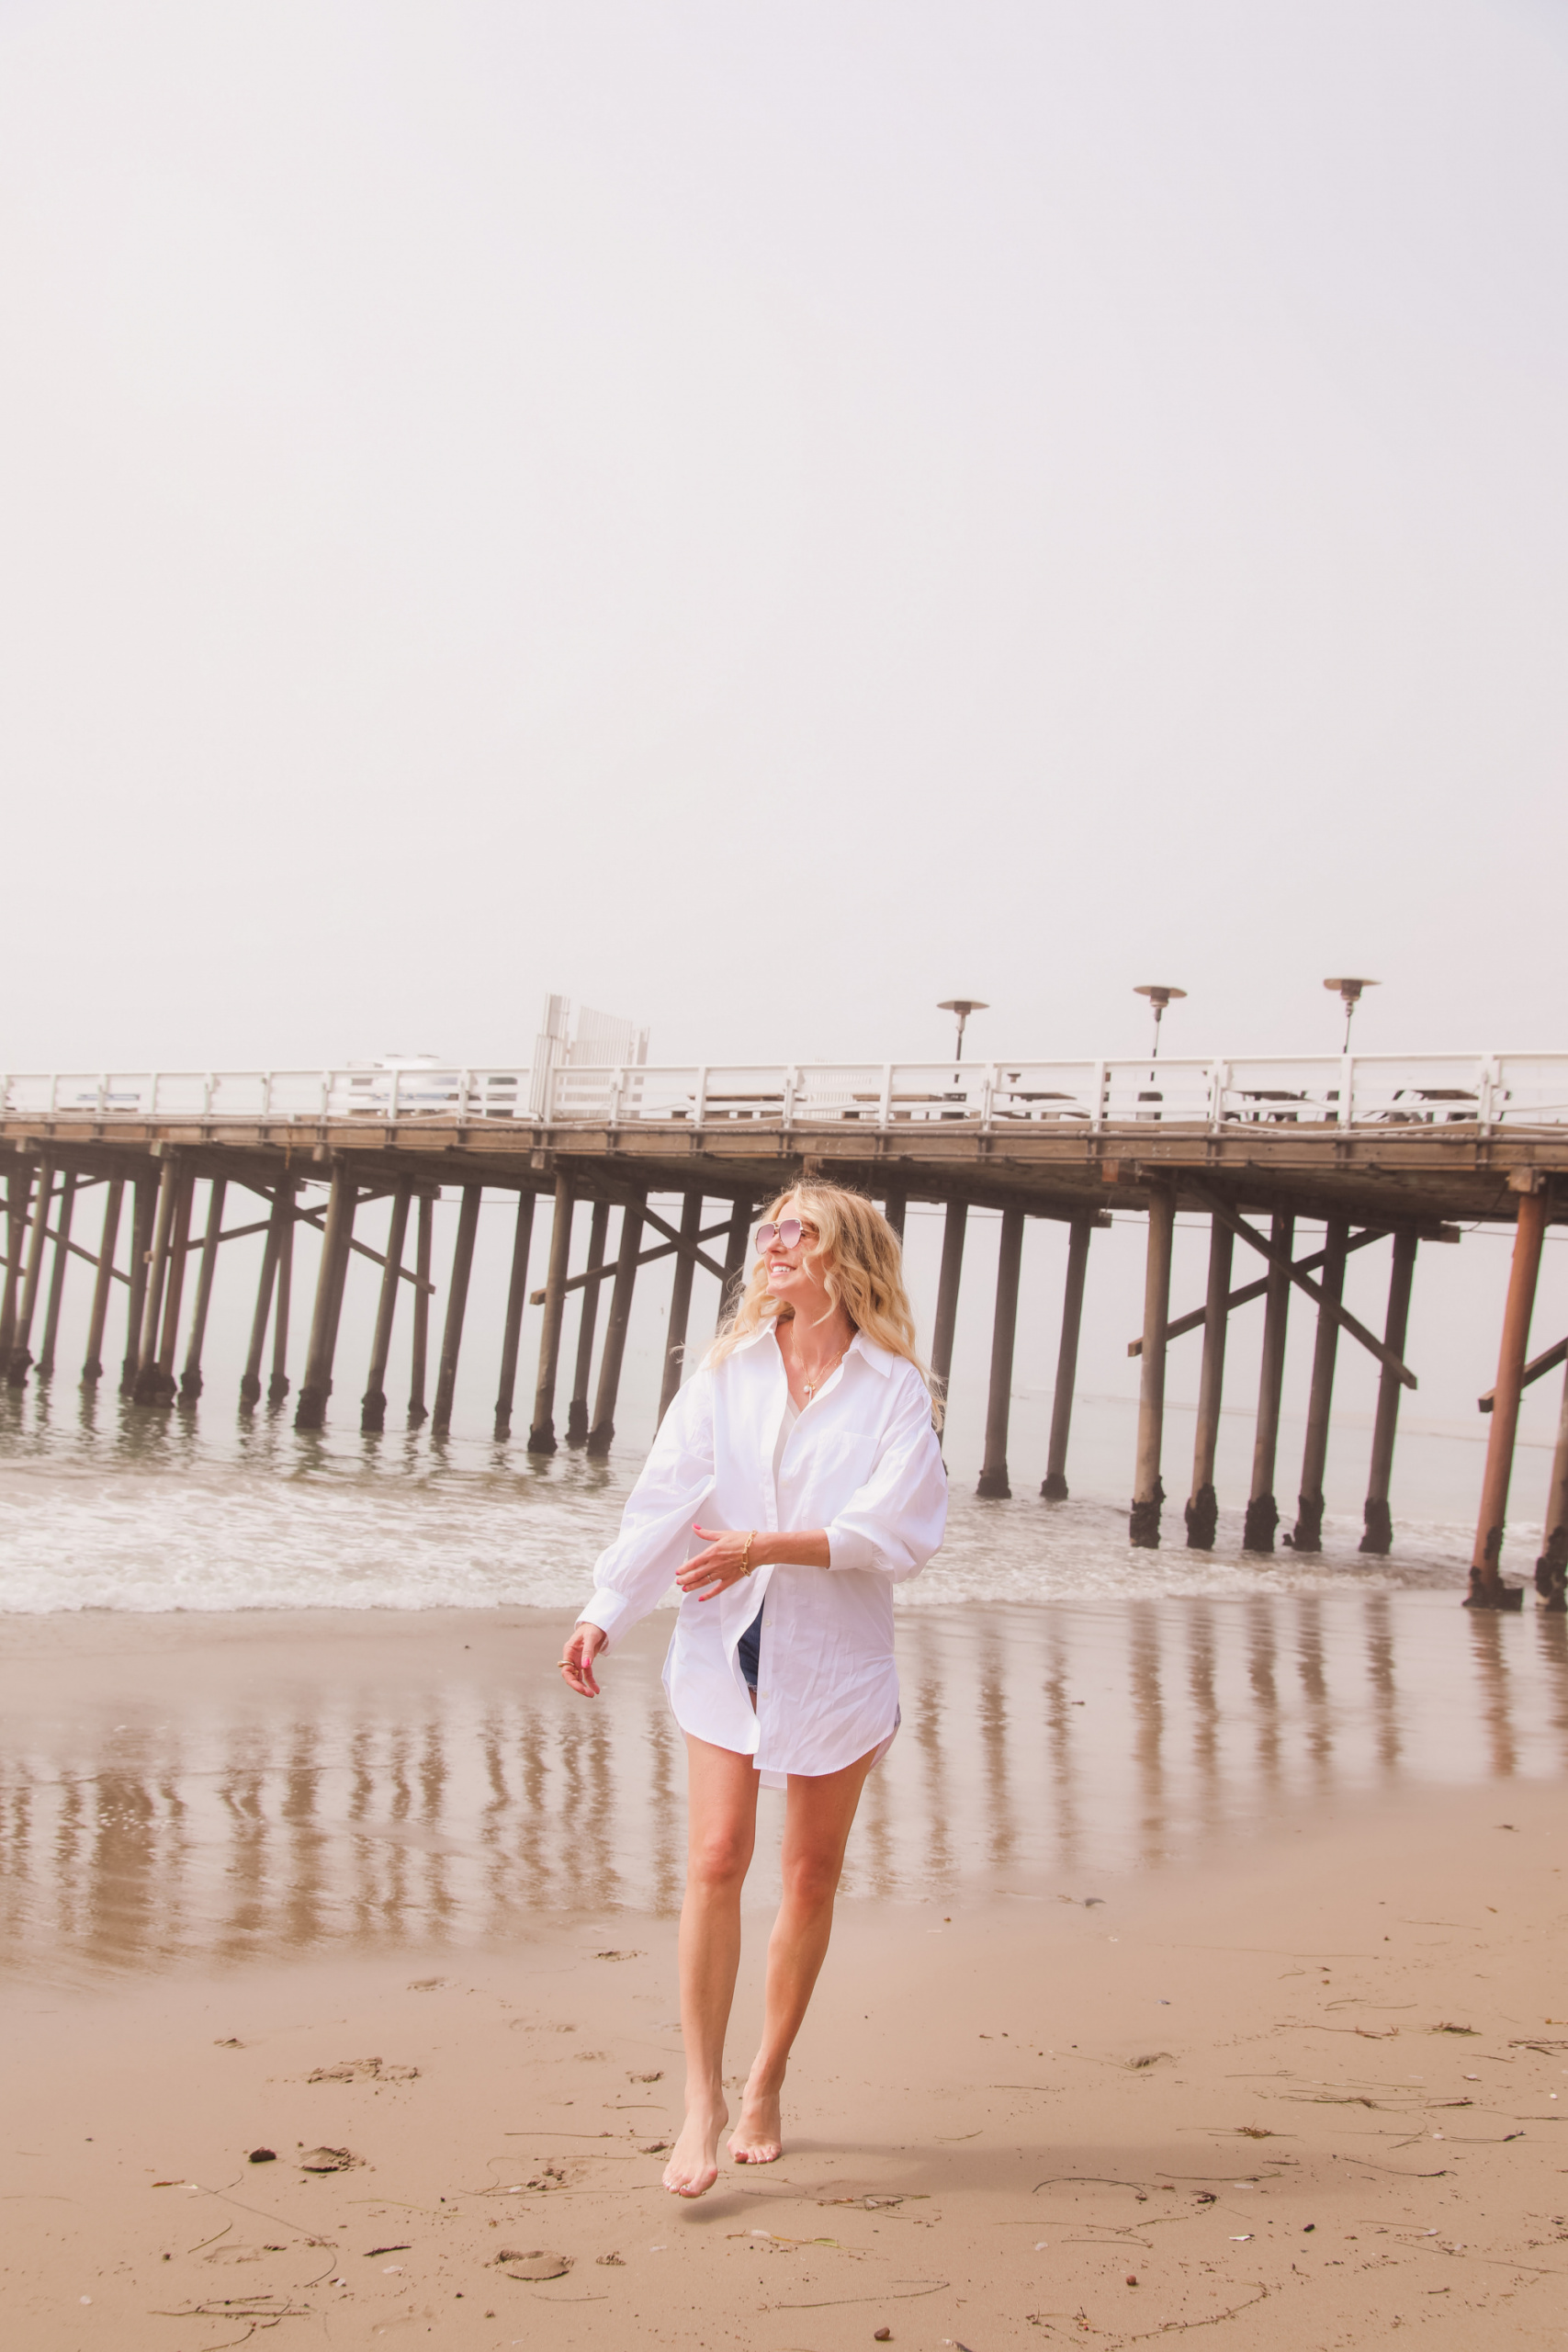 best white button down shirts, button down shorts over 40, how to find the perfect button dow shirt, white button down shirt, erin busbee, open edit oversized white button down shirt, why own a white button down shirt, levi's denim shorts, see by chloe espadrilles